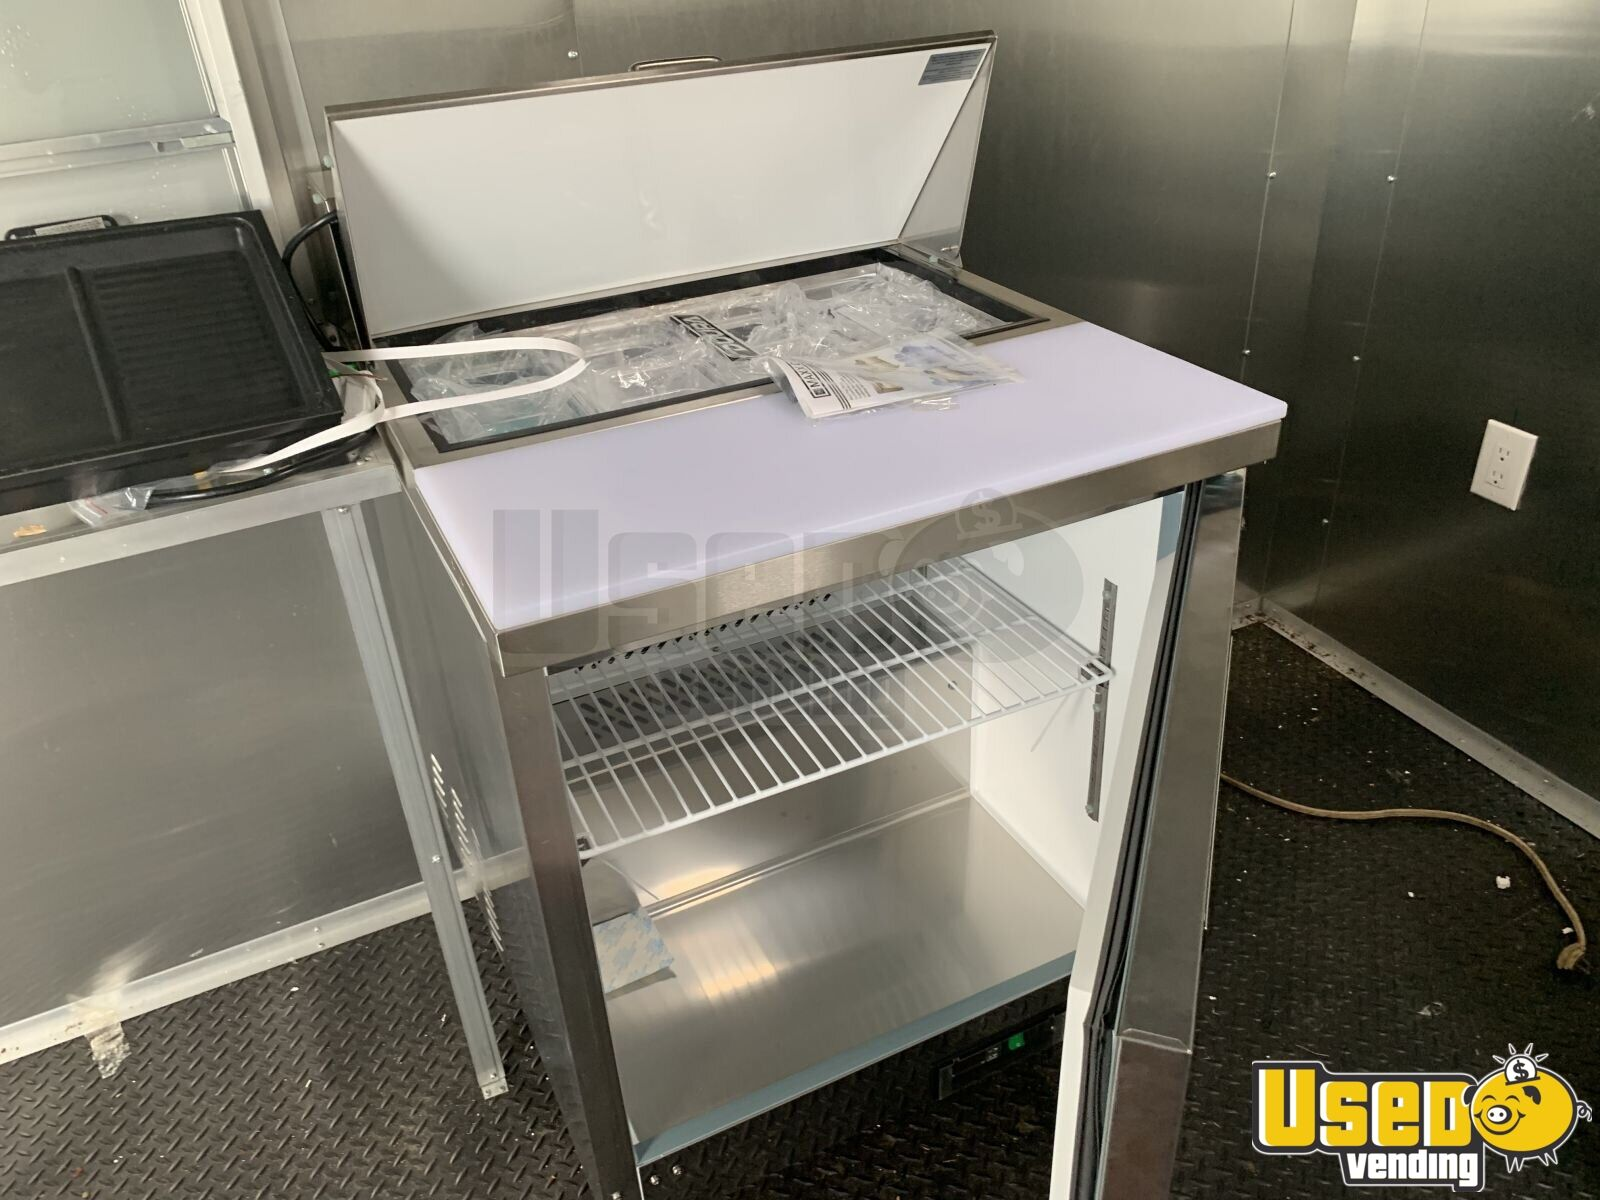 2018 Wow Cargo Trailer All-purpose Food Trailer Exterior Customer Counter Tennessee for Sale - 6